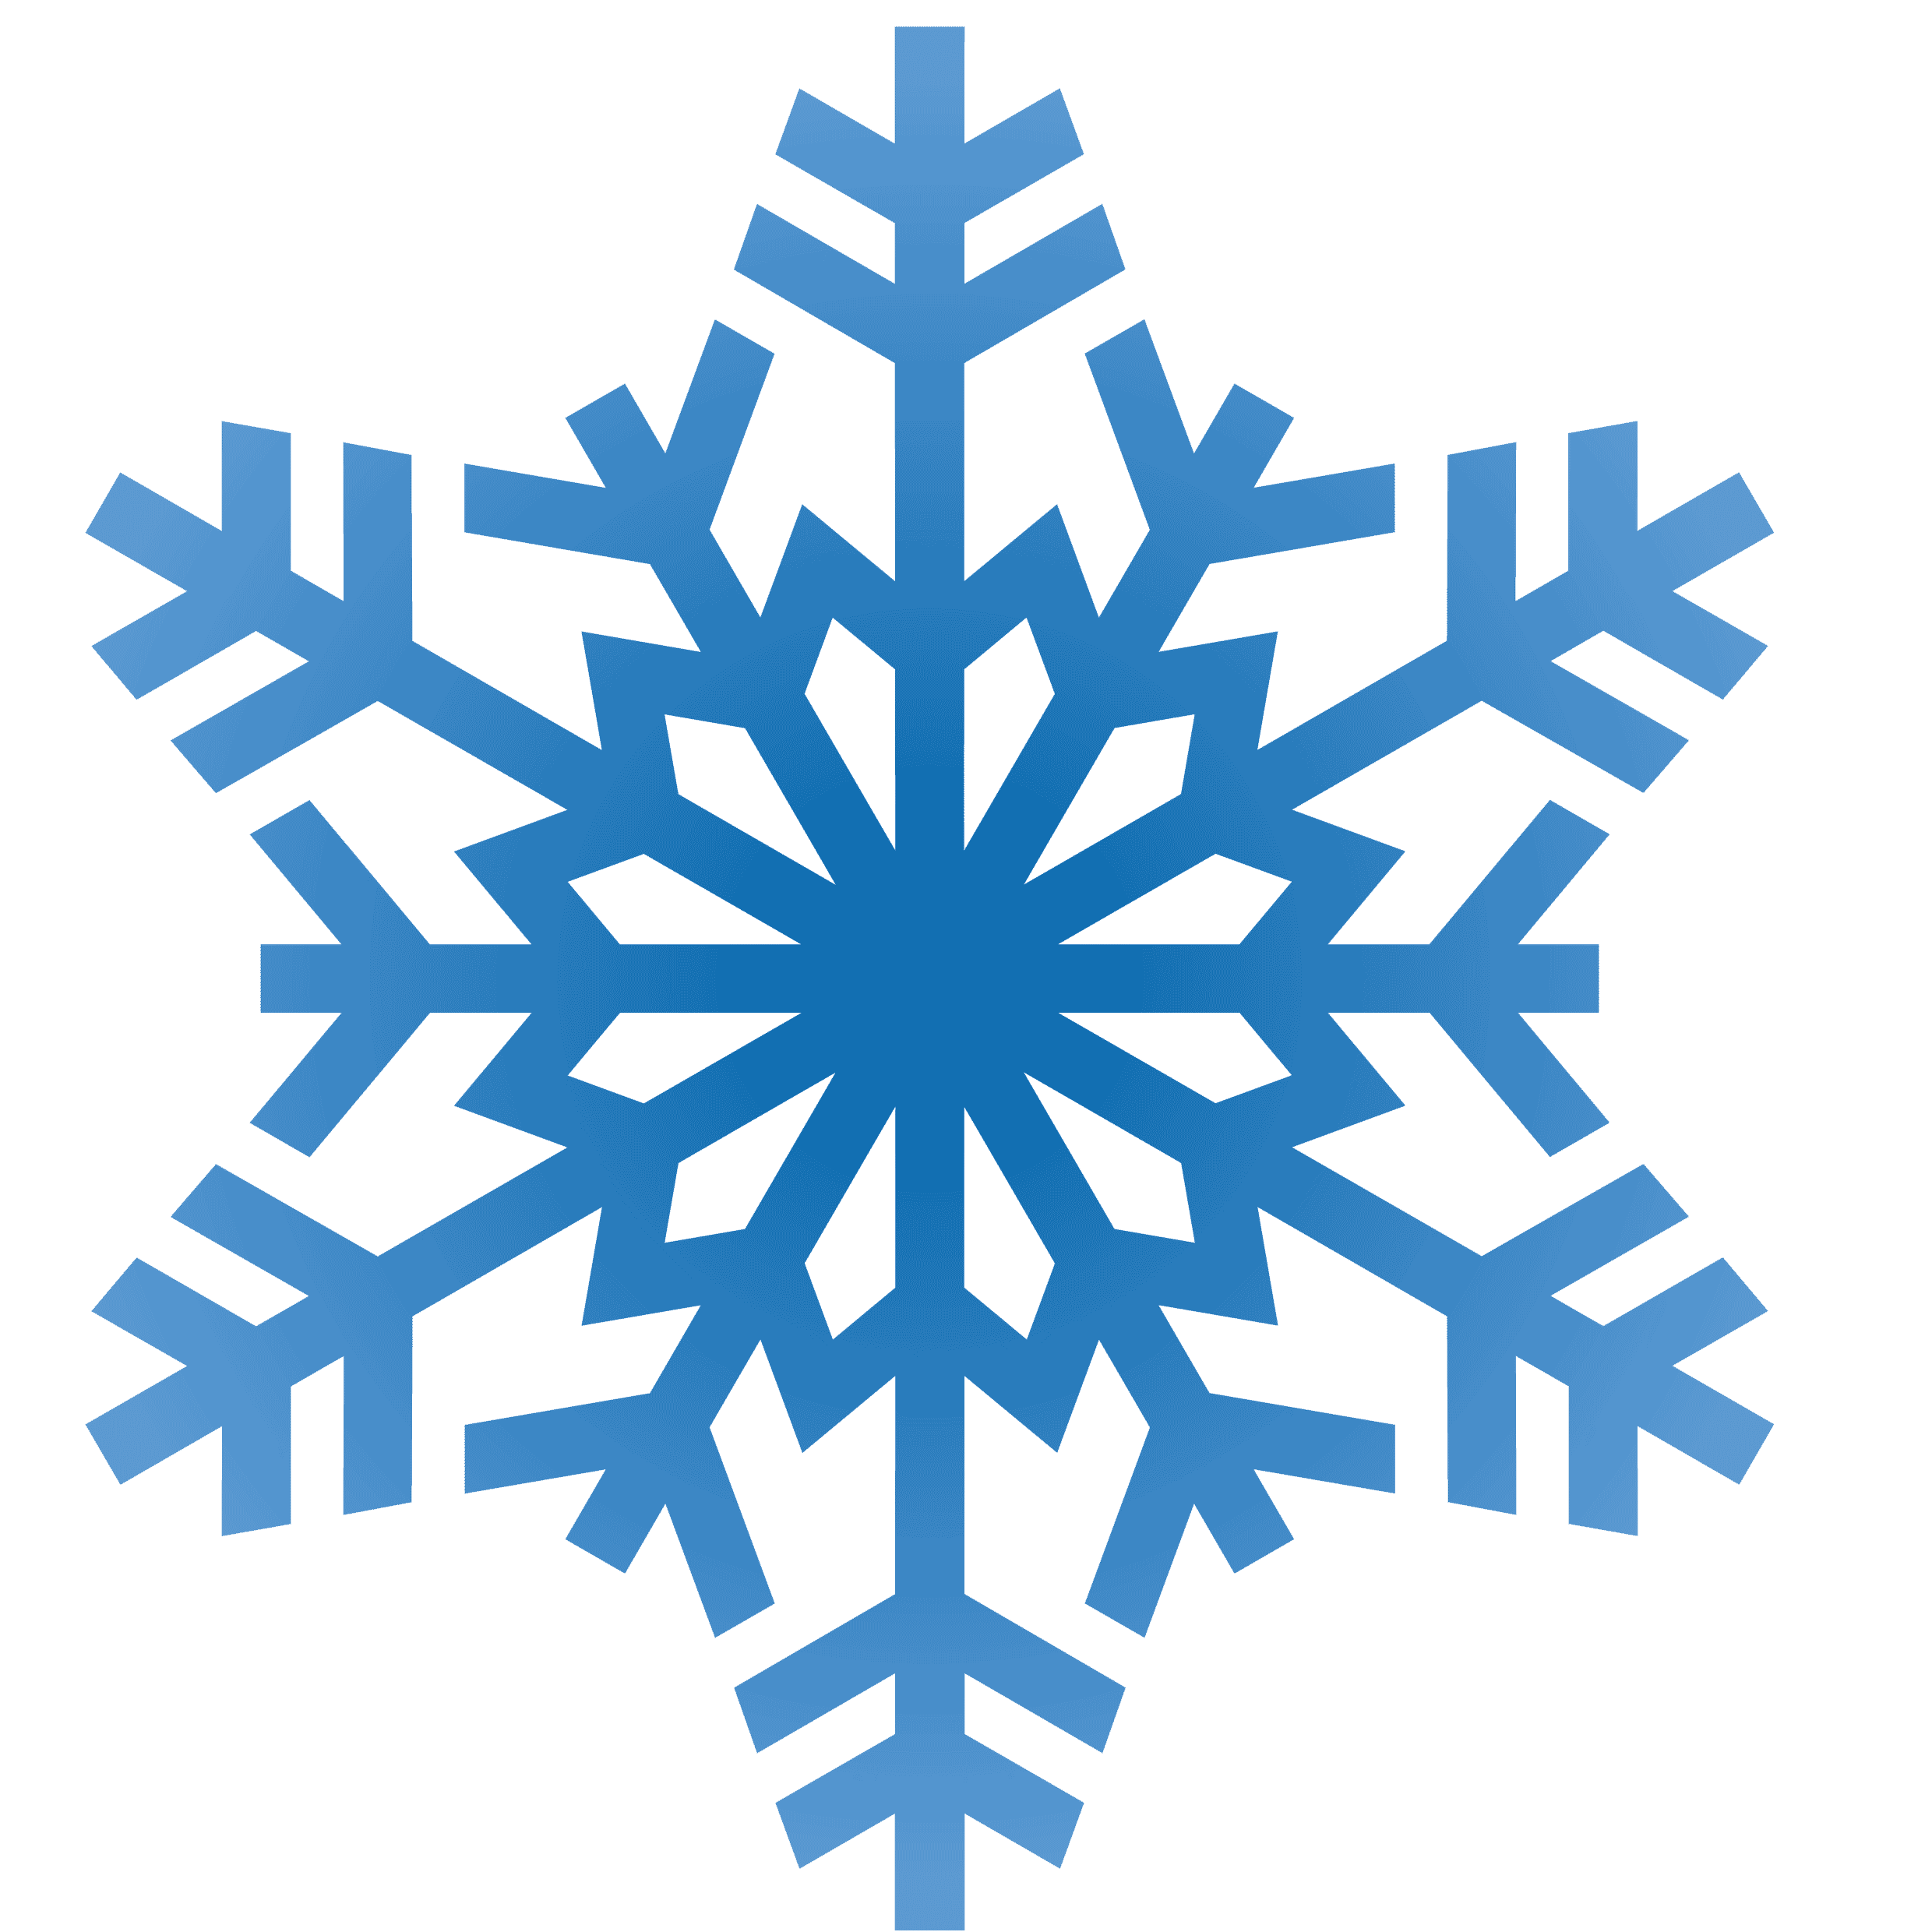 Snowflakes Png image #41263